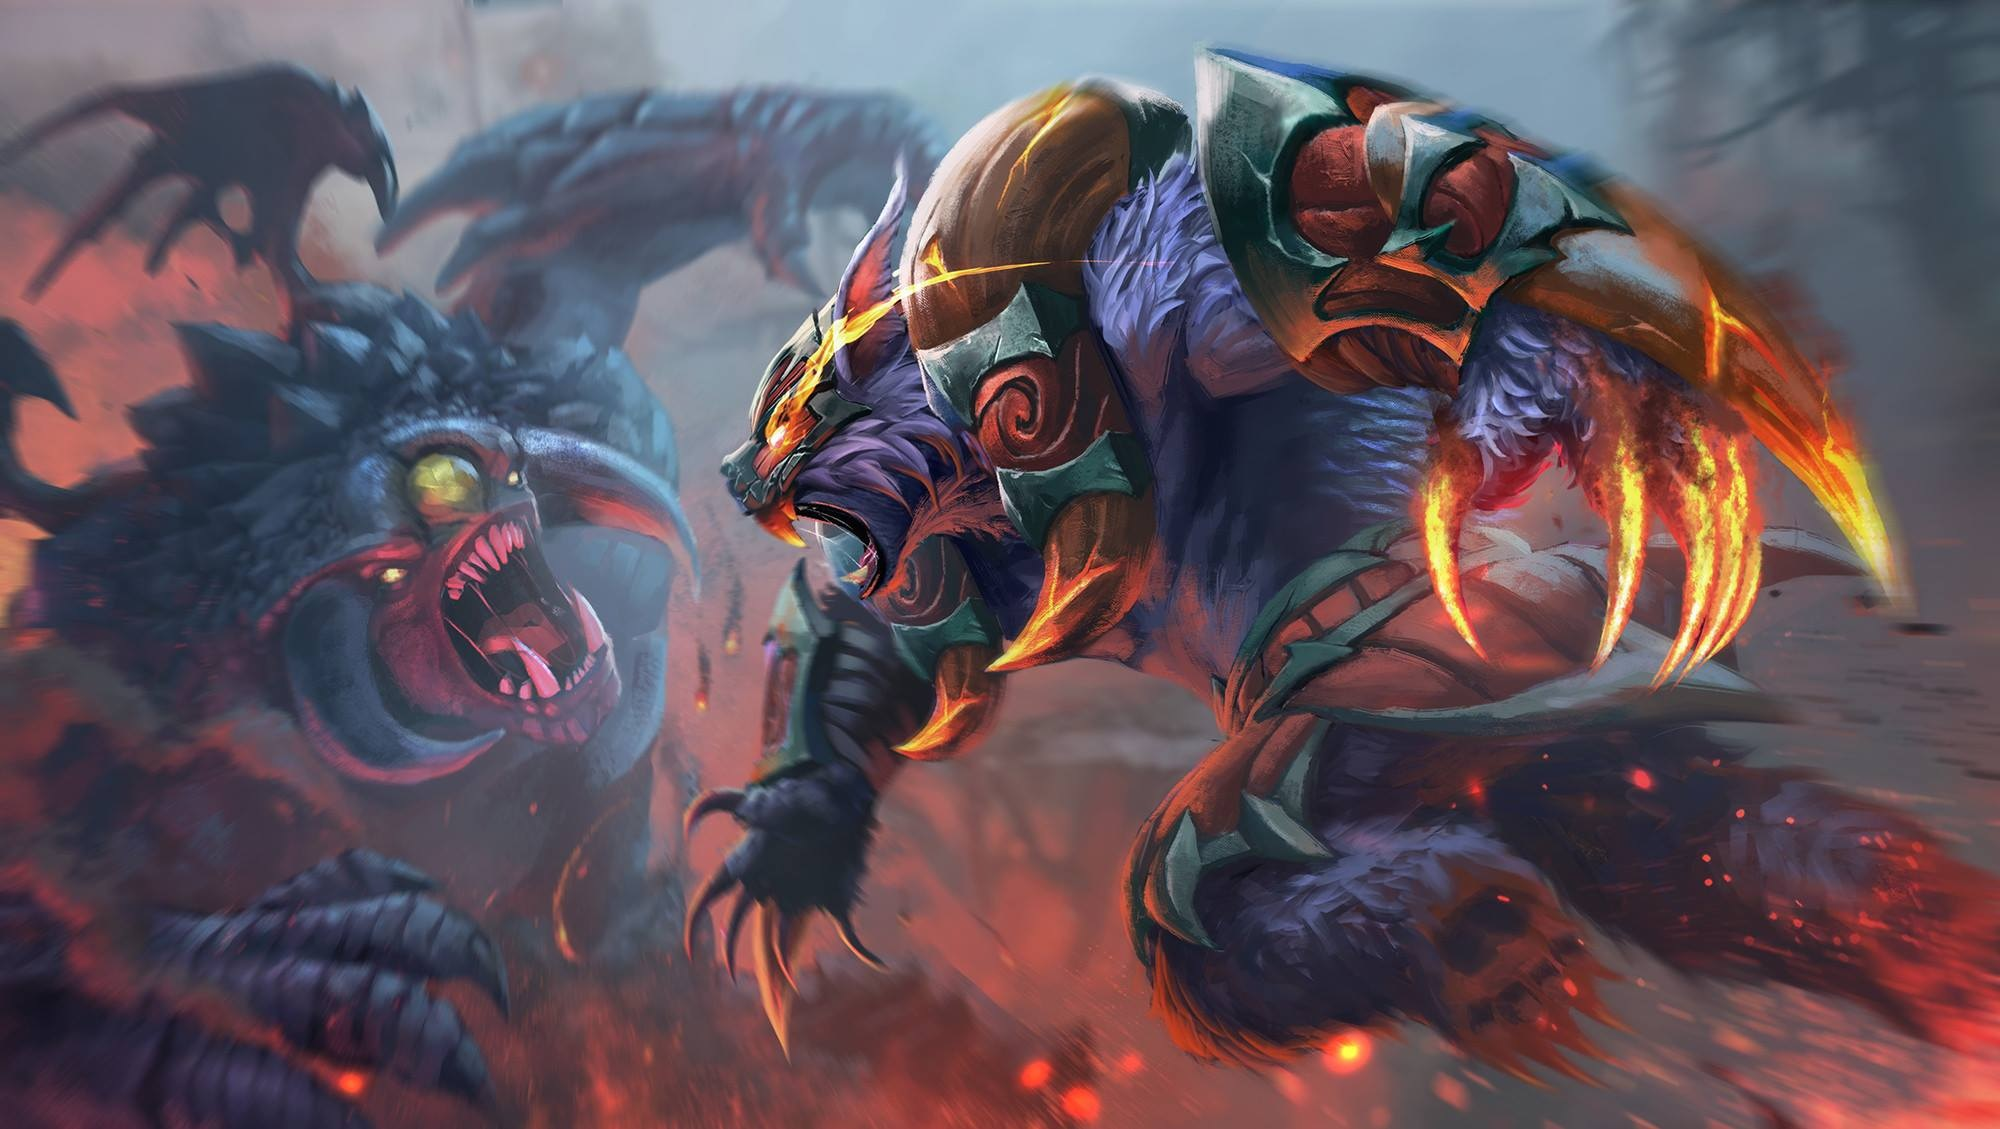 Ursa Vs Roshan Wallpaper Downloads Wallpapers Dota 2